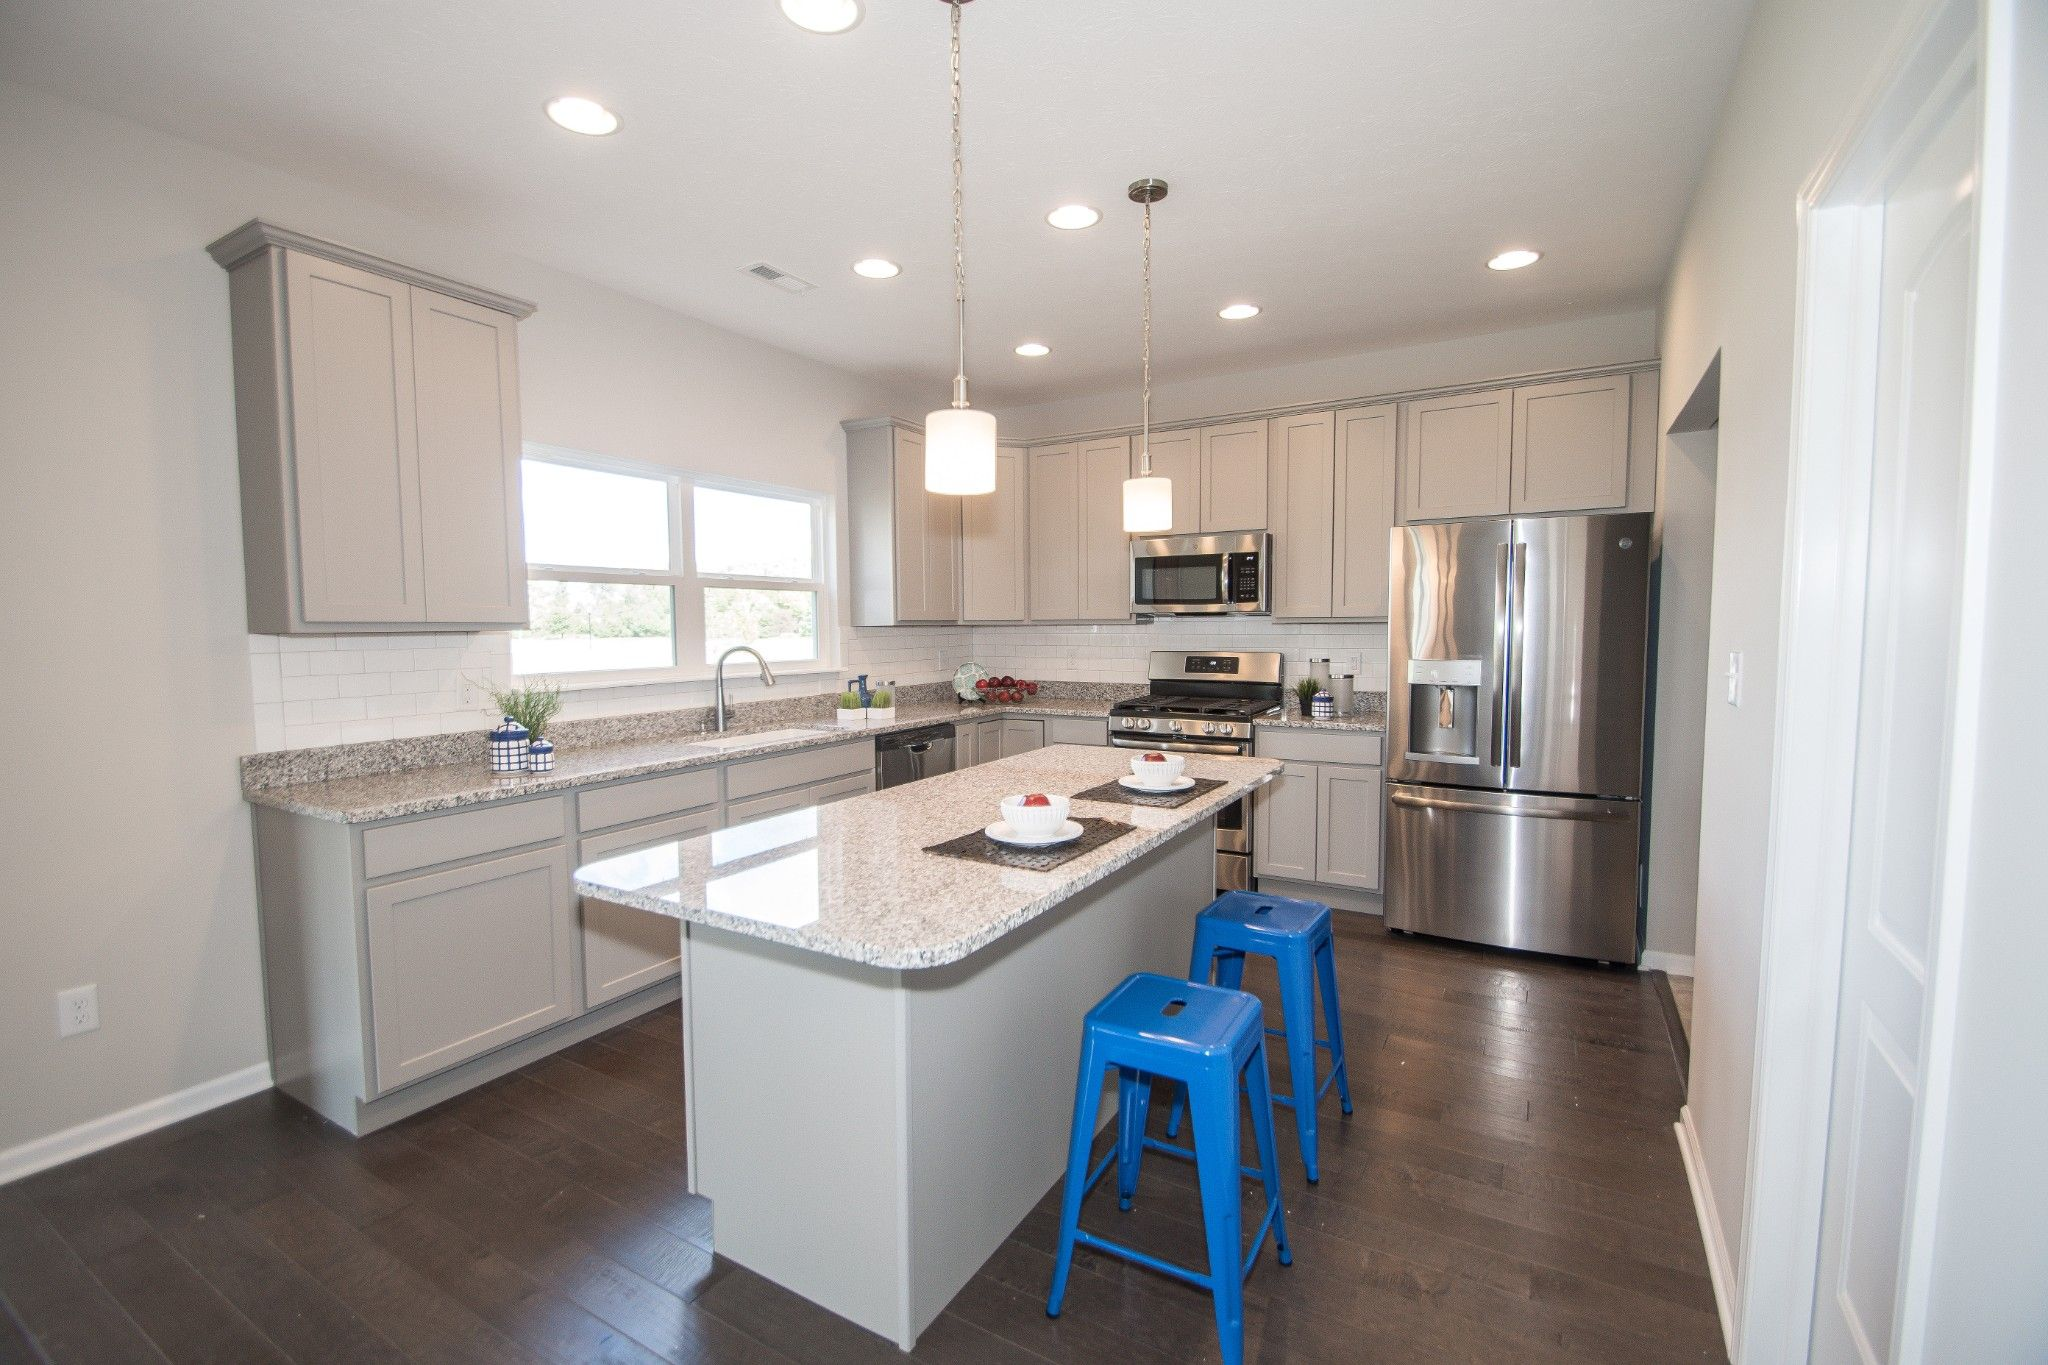 Kitchen featured in the Savannah By Olthof Homes in Indianapolis, IN